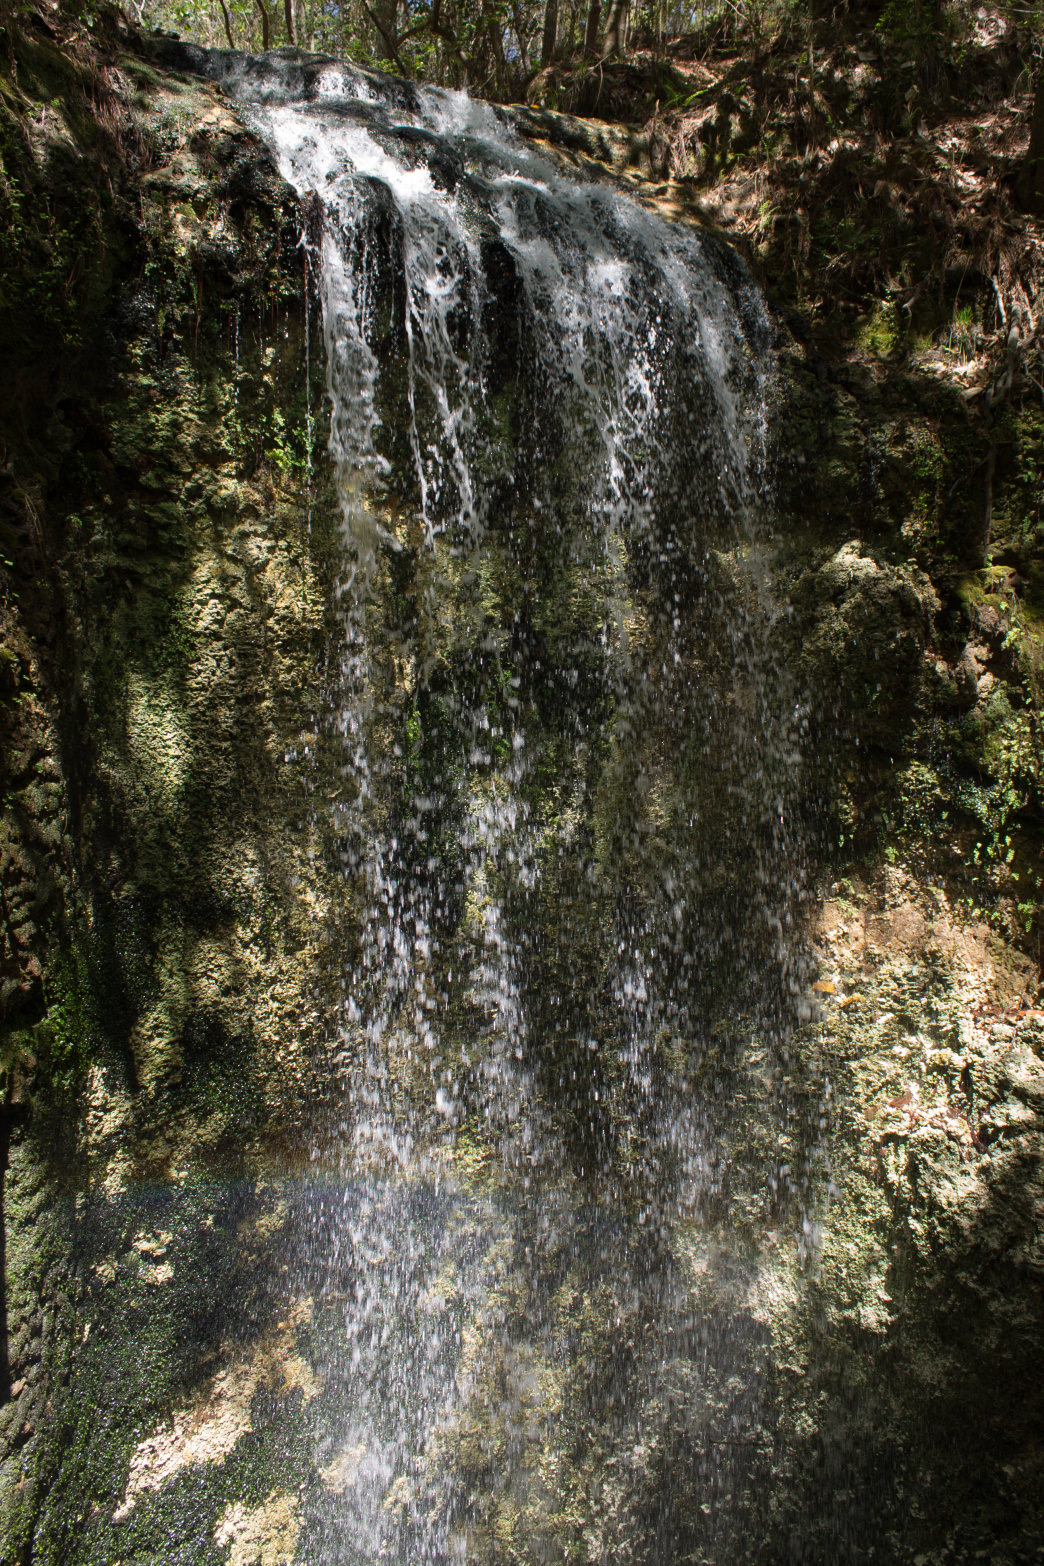 The tallest waterfall in Florida isn't your typical cascade.